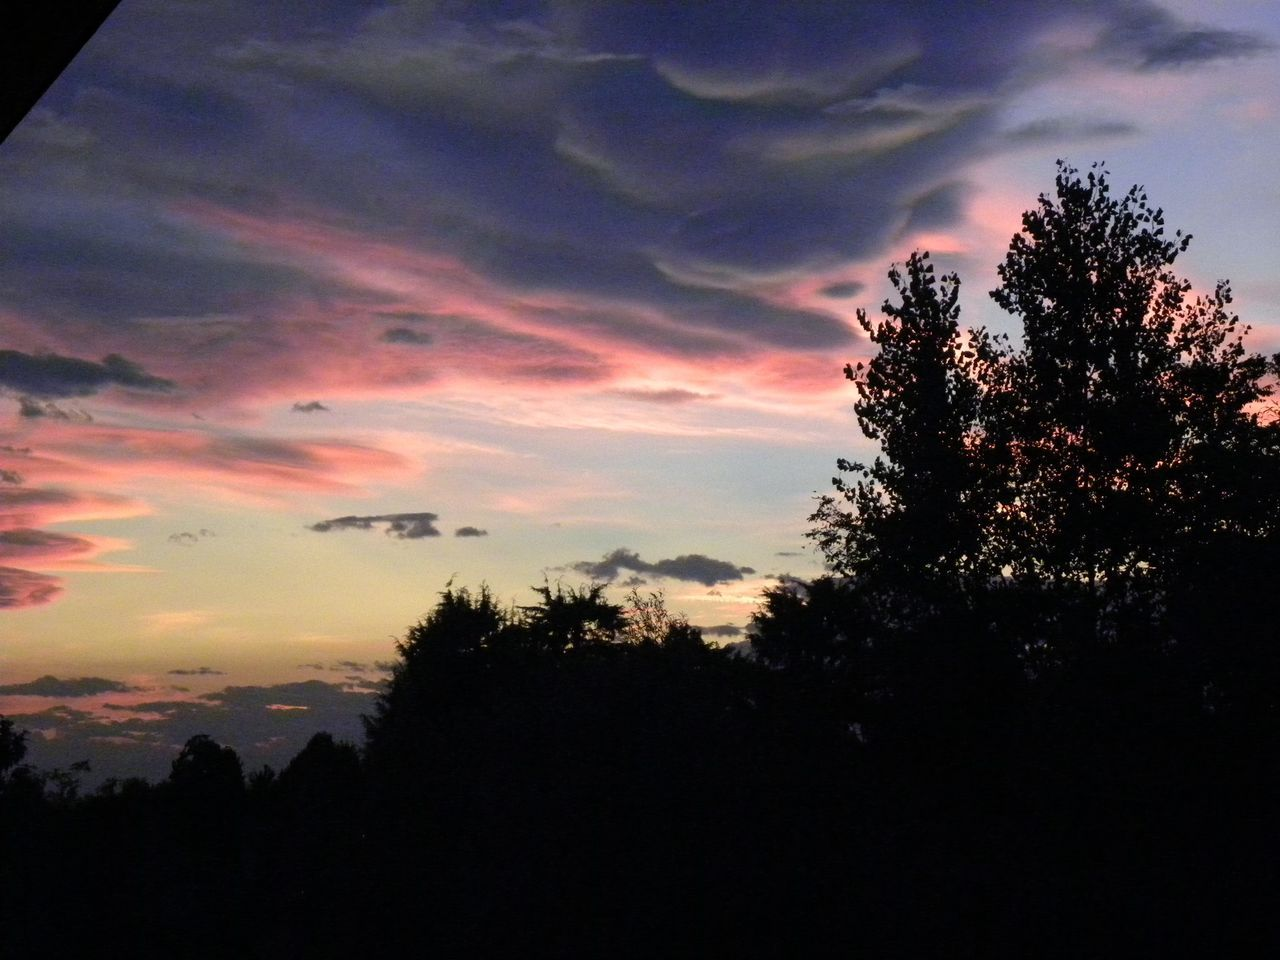 Watercolor sunset . Tree Sunset Silhouette Dramatic Sky Nature Beauty In Nature No People Sky Scenics Cloud - Sky Outdoors Tranquility Vibrant Color Summer Blue